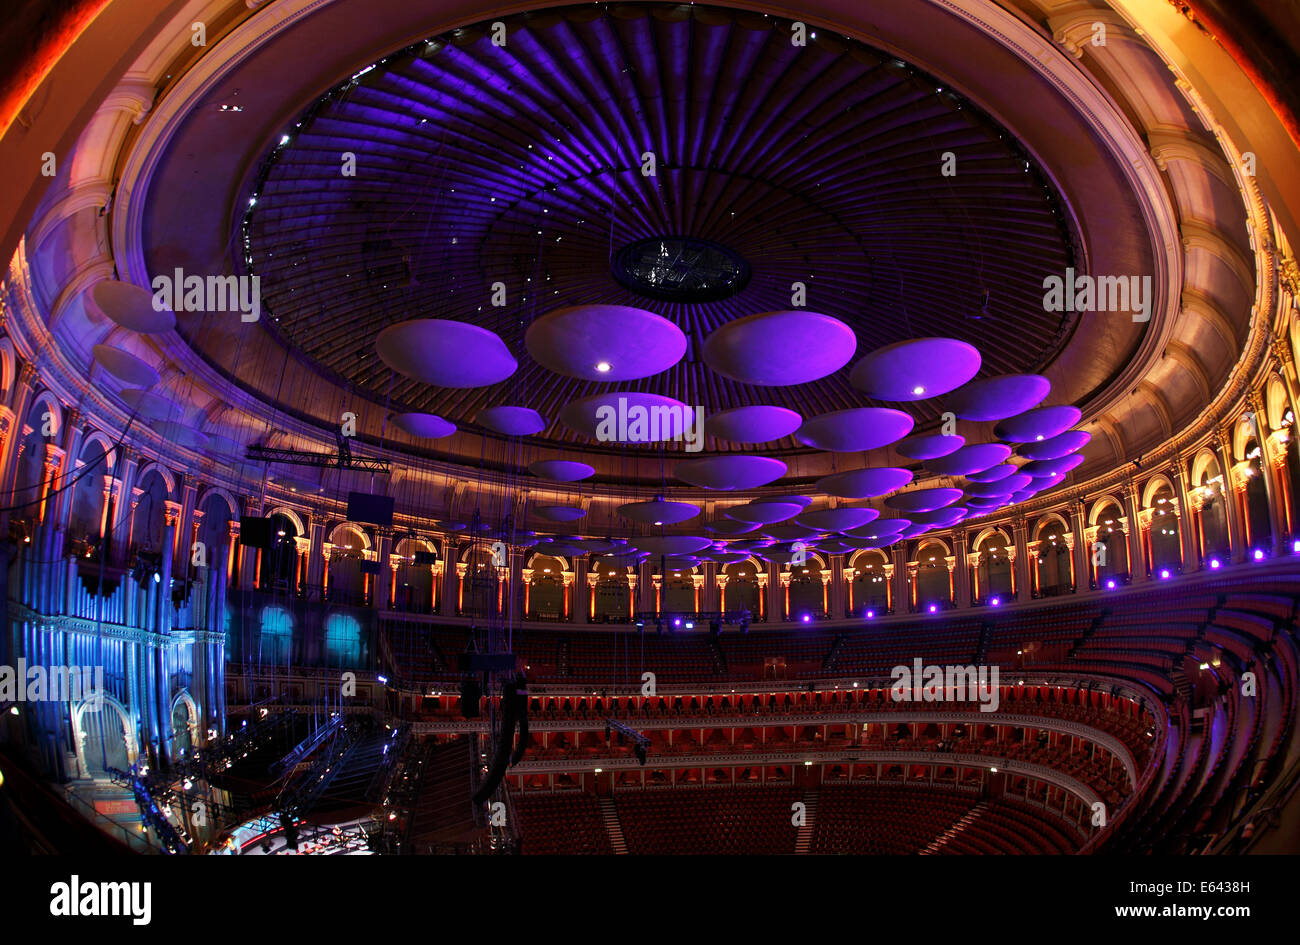 Acoustic sound panels in the roof of the royal albert hall for Door 8 royal albert hall